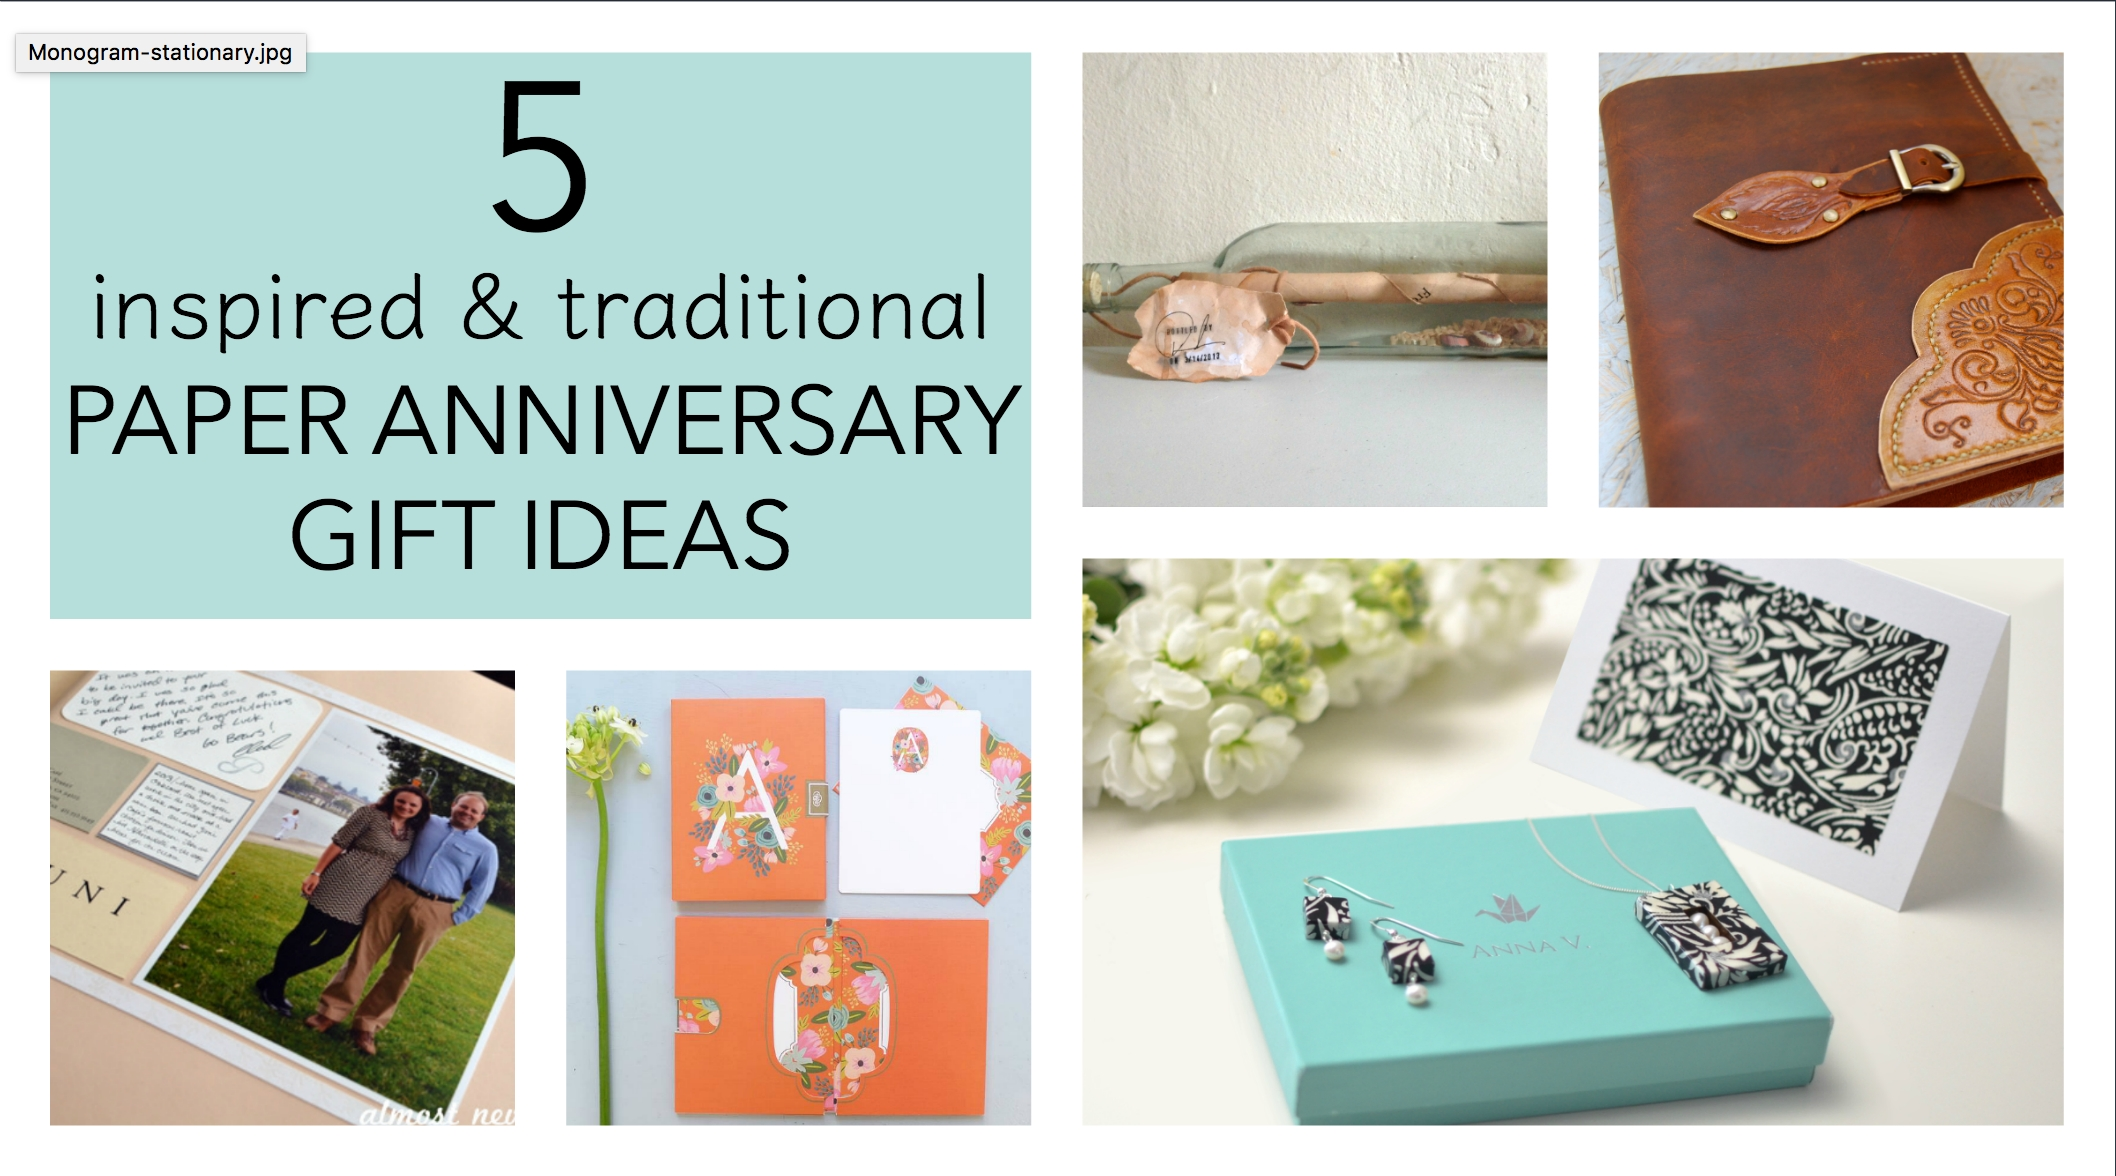 10 Great Anniversary Gifts Ideas For Her 5 traditional paper anniversary gift ideas for her paper 14 2021